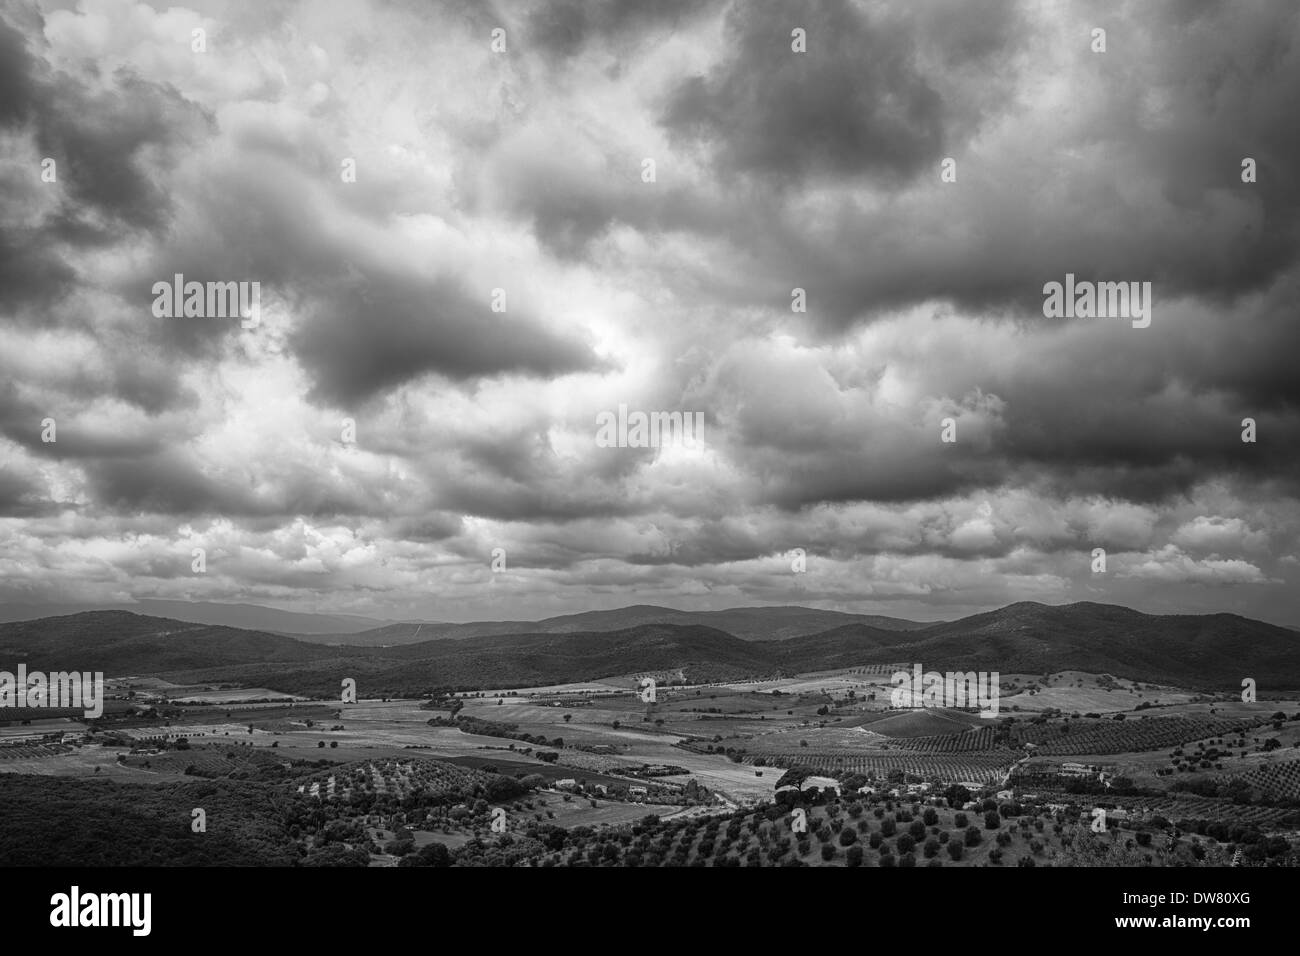 A view, in black and white, of Maremma hills, near Capalbio, Tuscany, Italy, Europe - Stock Image